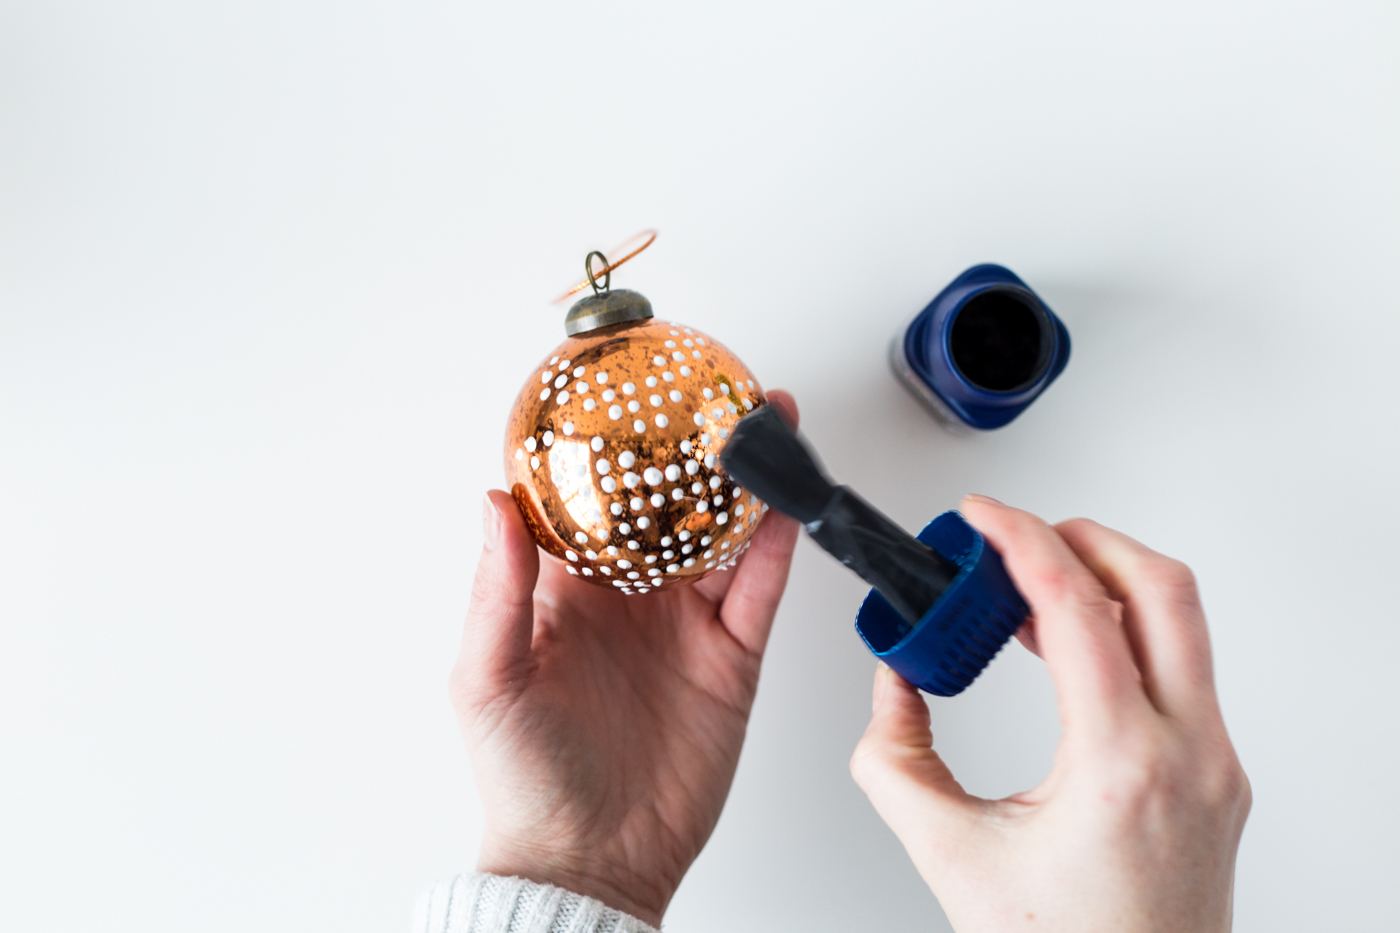 diy-puffy-paint-bauble-tutorial-with-dulux-fallfordiy-6